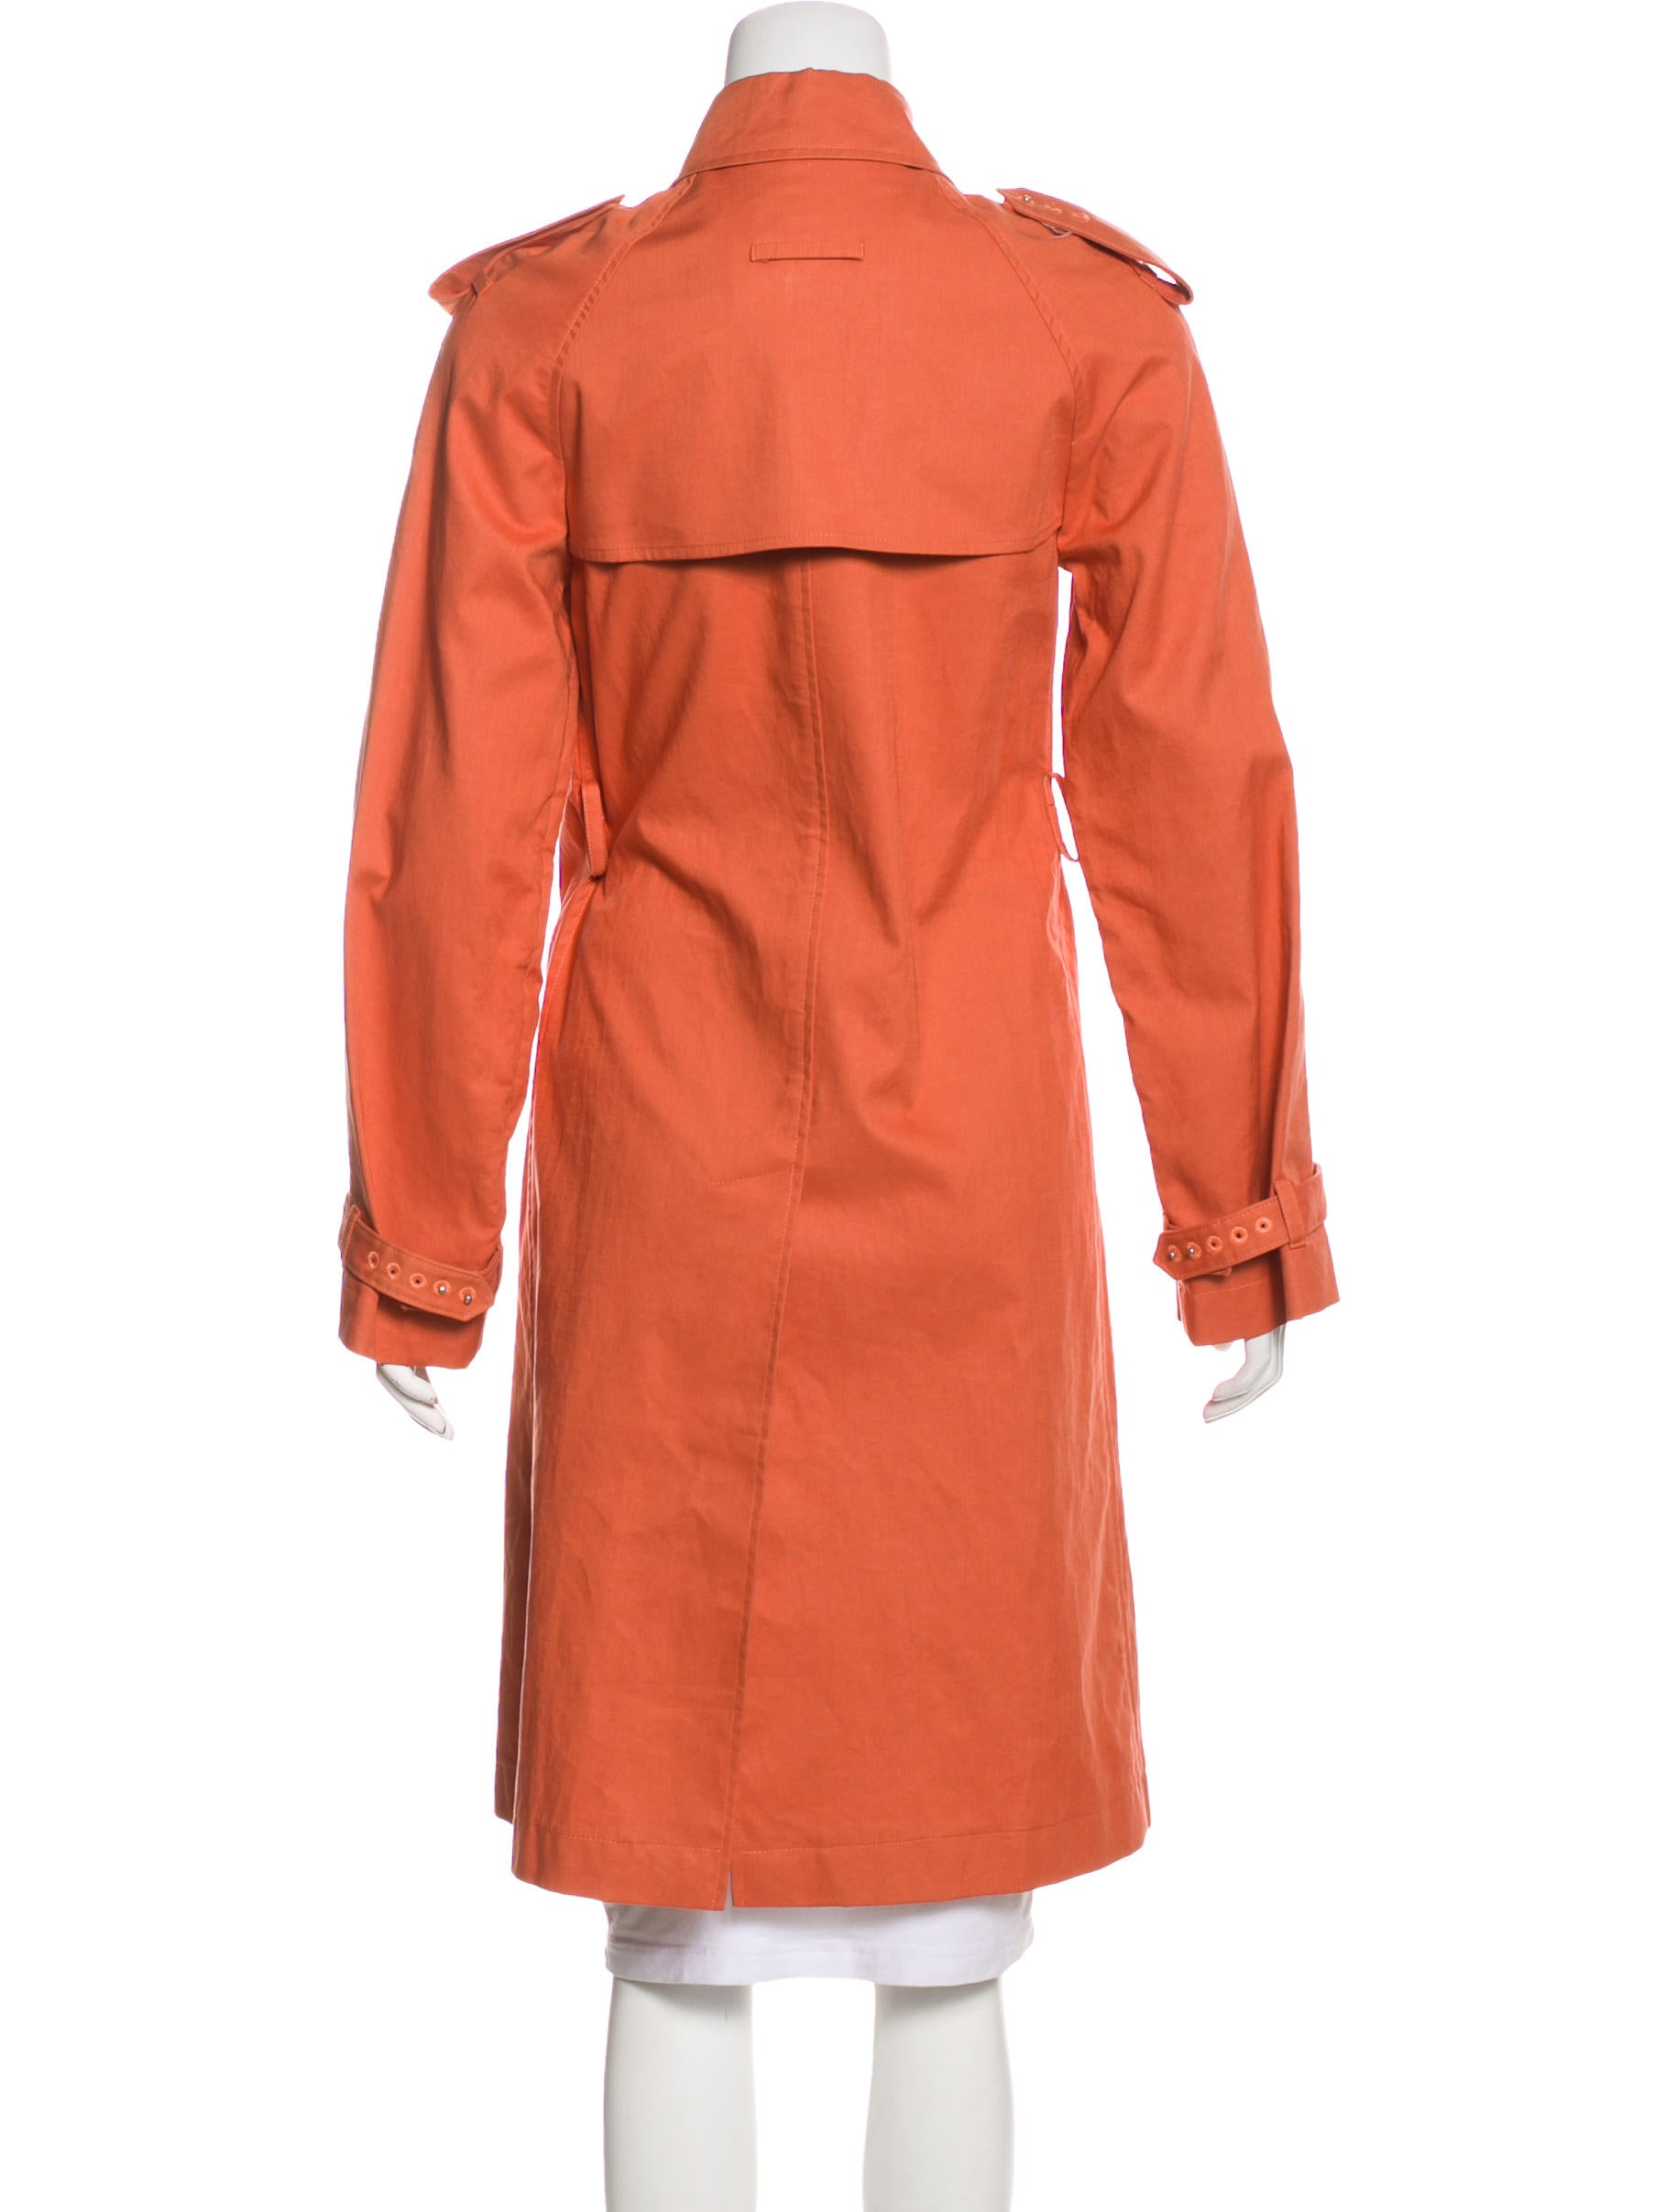 Jean paul gaultier belted trench coat clothing for Jean paul gaultier clothing